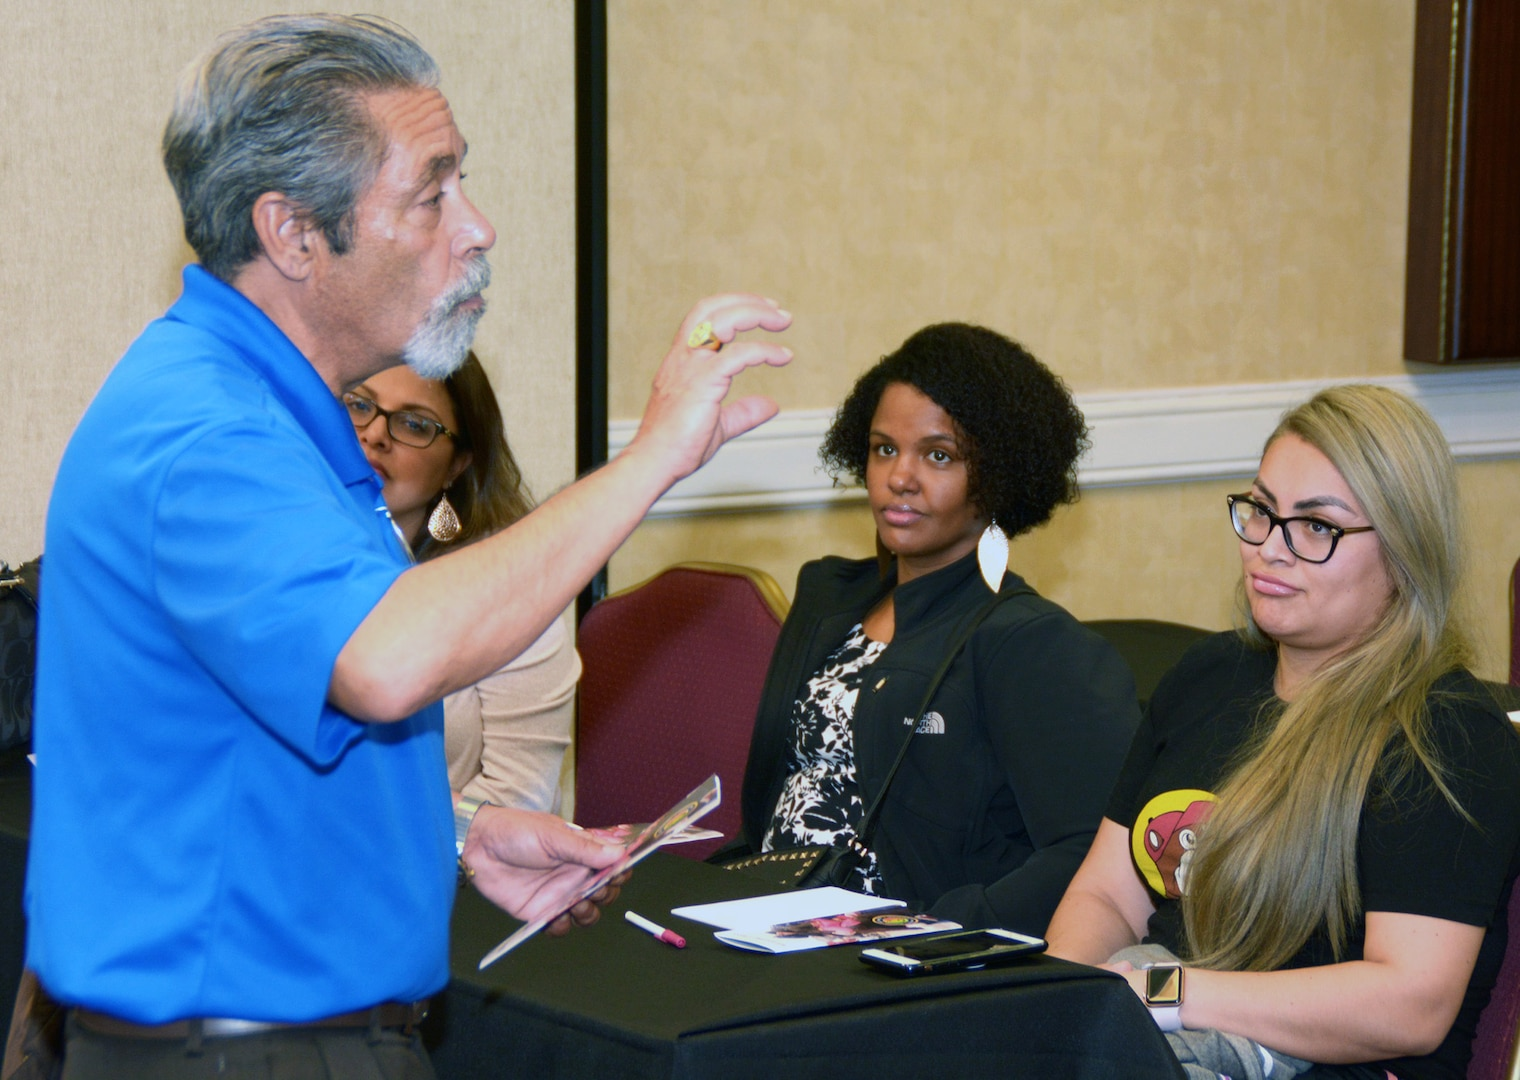 Navy veteran Robert Searles, a facilitator assigned to the Navy's 21st Century Sailor office in Norfolk, Va., speaks with spouses of Navy Recruiting District San Antonio about Operational Stress Control during a district training meeting held at the Crowne Plaza Hotel in Austin Dec. 19. More than 250 recruiters, support personnel and their spouses attended the training where they were provided with support networks, programs, resources, training, and skills needed to overcome adversity and thrive.